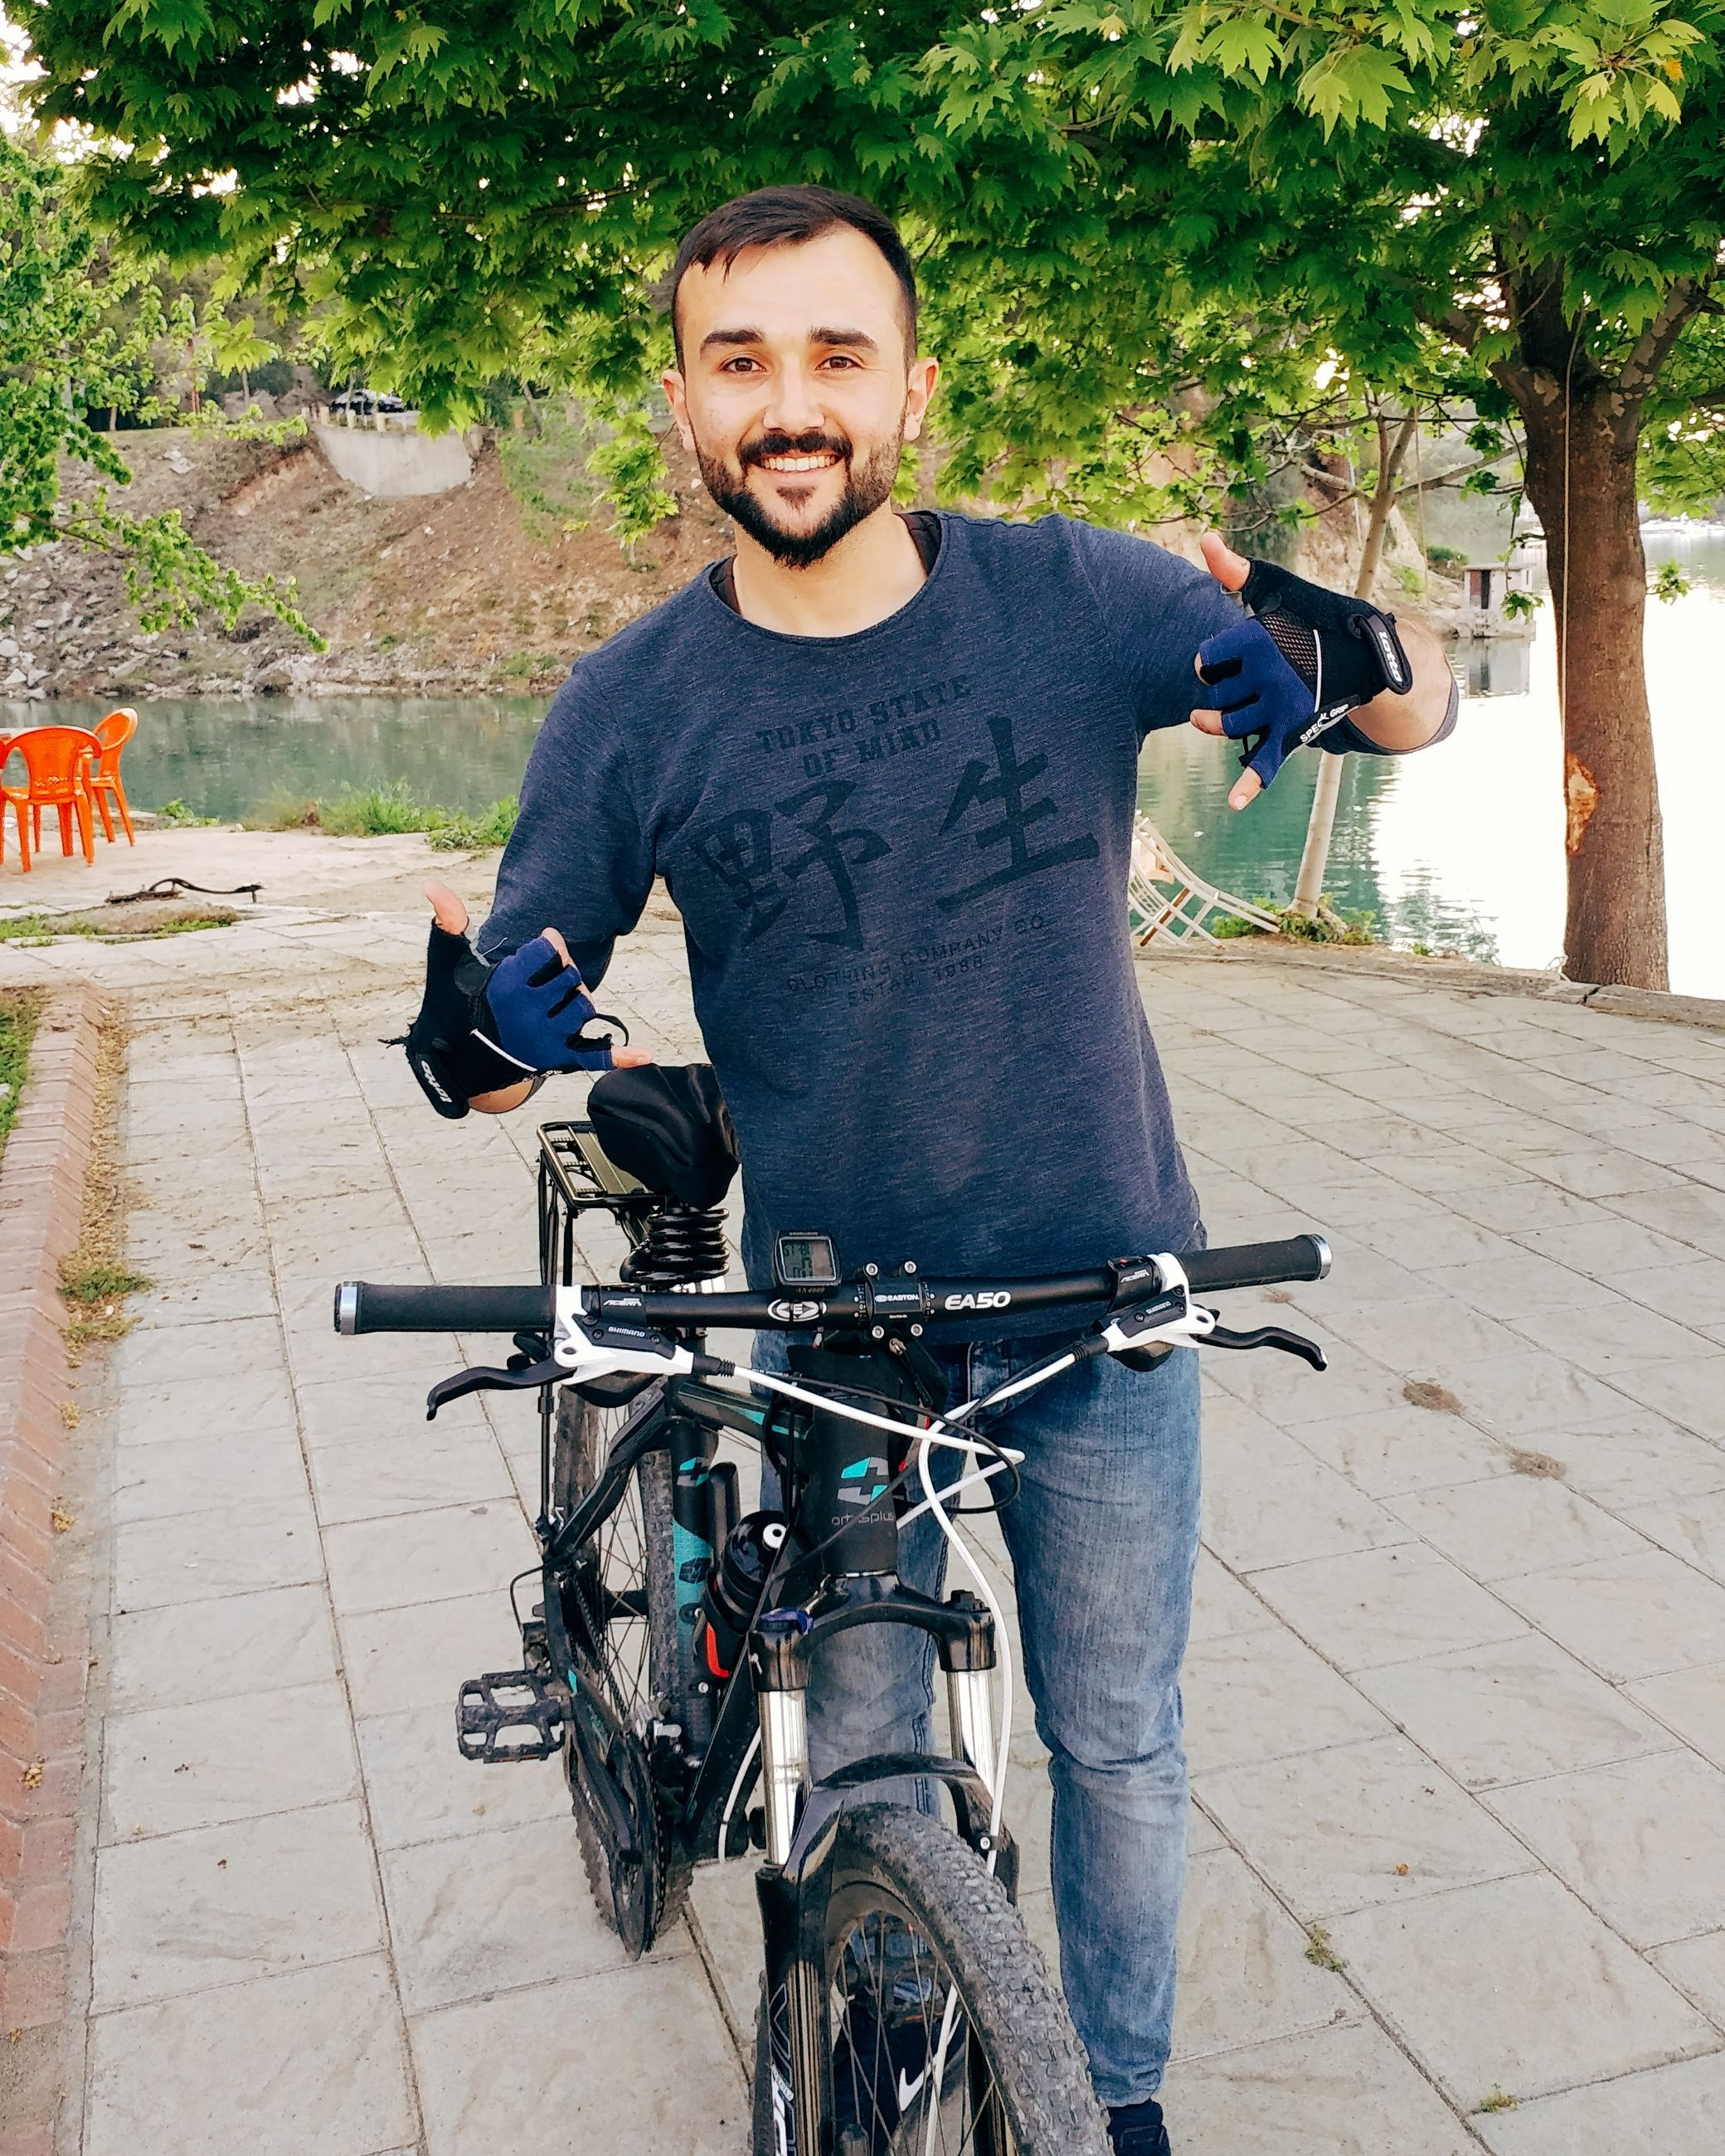 bicycle, young adult, only men, adults only, cycling, beard, transportation, adult, one man only, outdoors, portrait, casual clothing, one person, happiness, men, cheerful, lifestyles, people, leisure activity, city, smiling, real people, tree, day